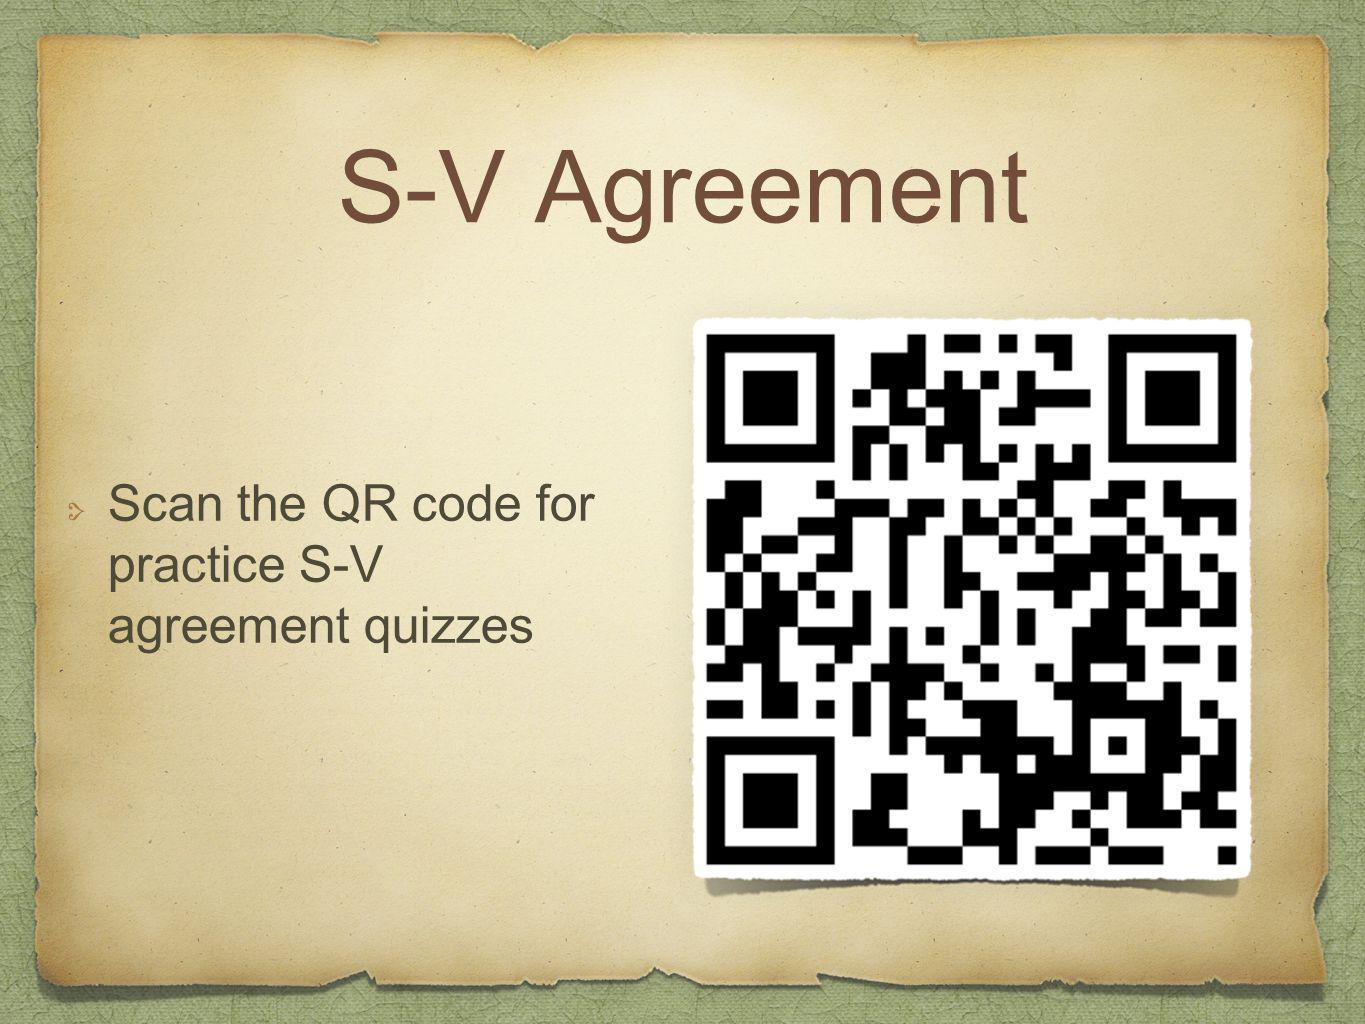 S-V Agreement Scan the QR code for practice S-V agreement quizzes